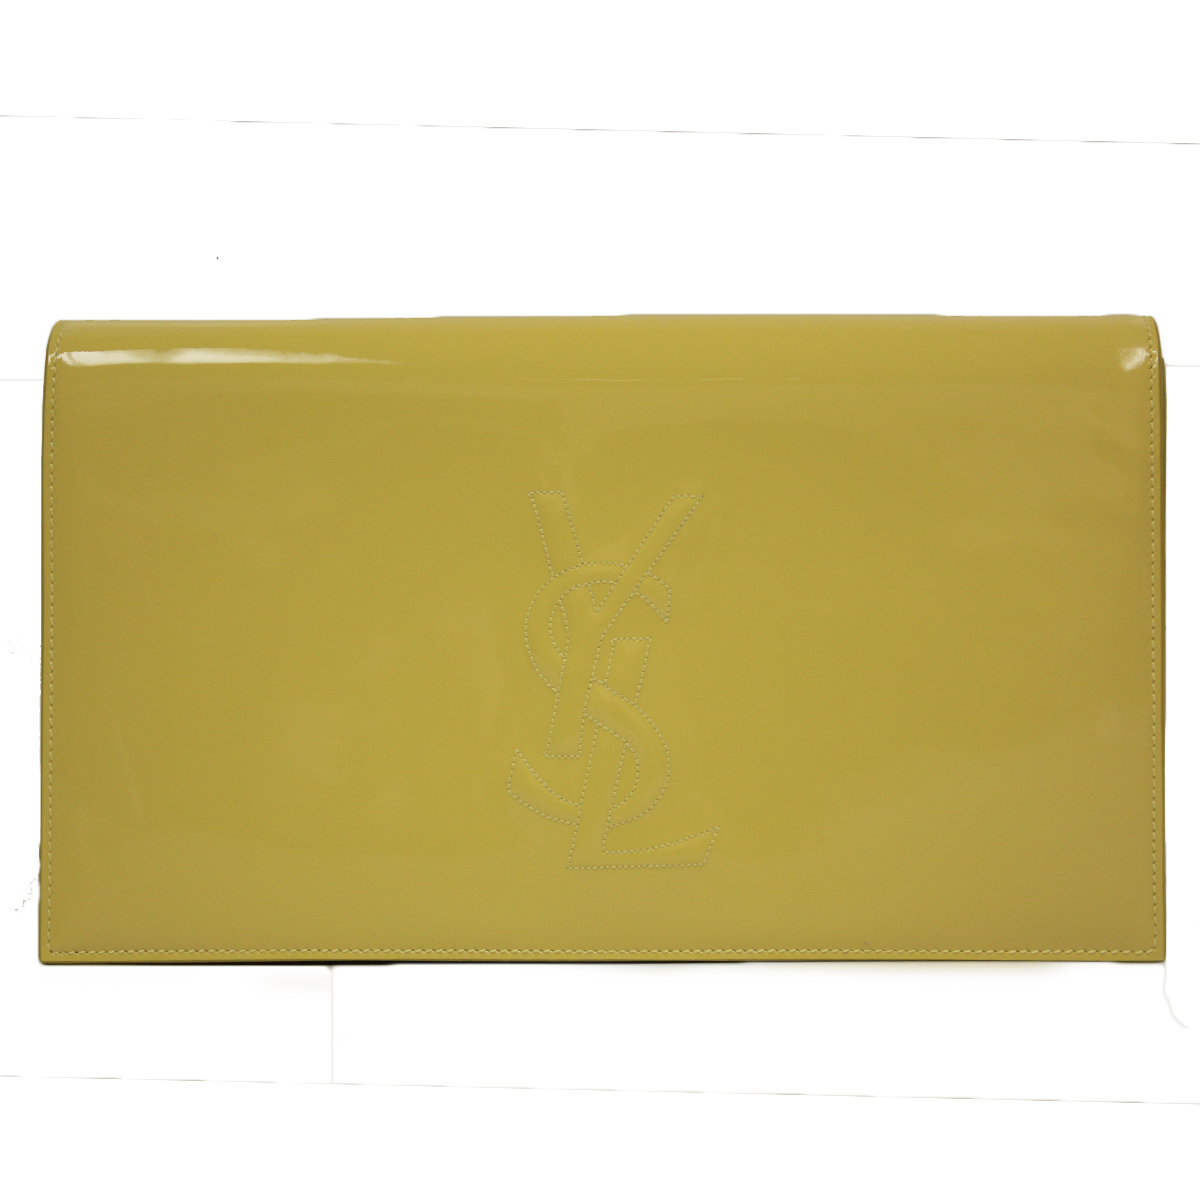 Saint Laurent YSL Belle du Jour Neon Patent Leather Clutch 361120 ...